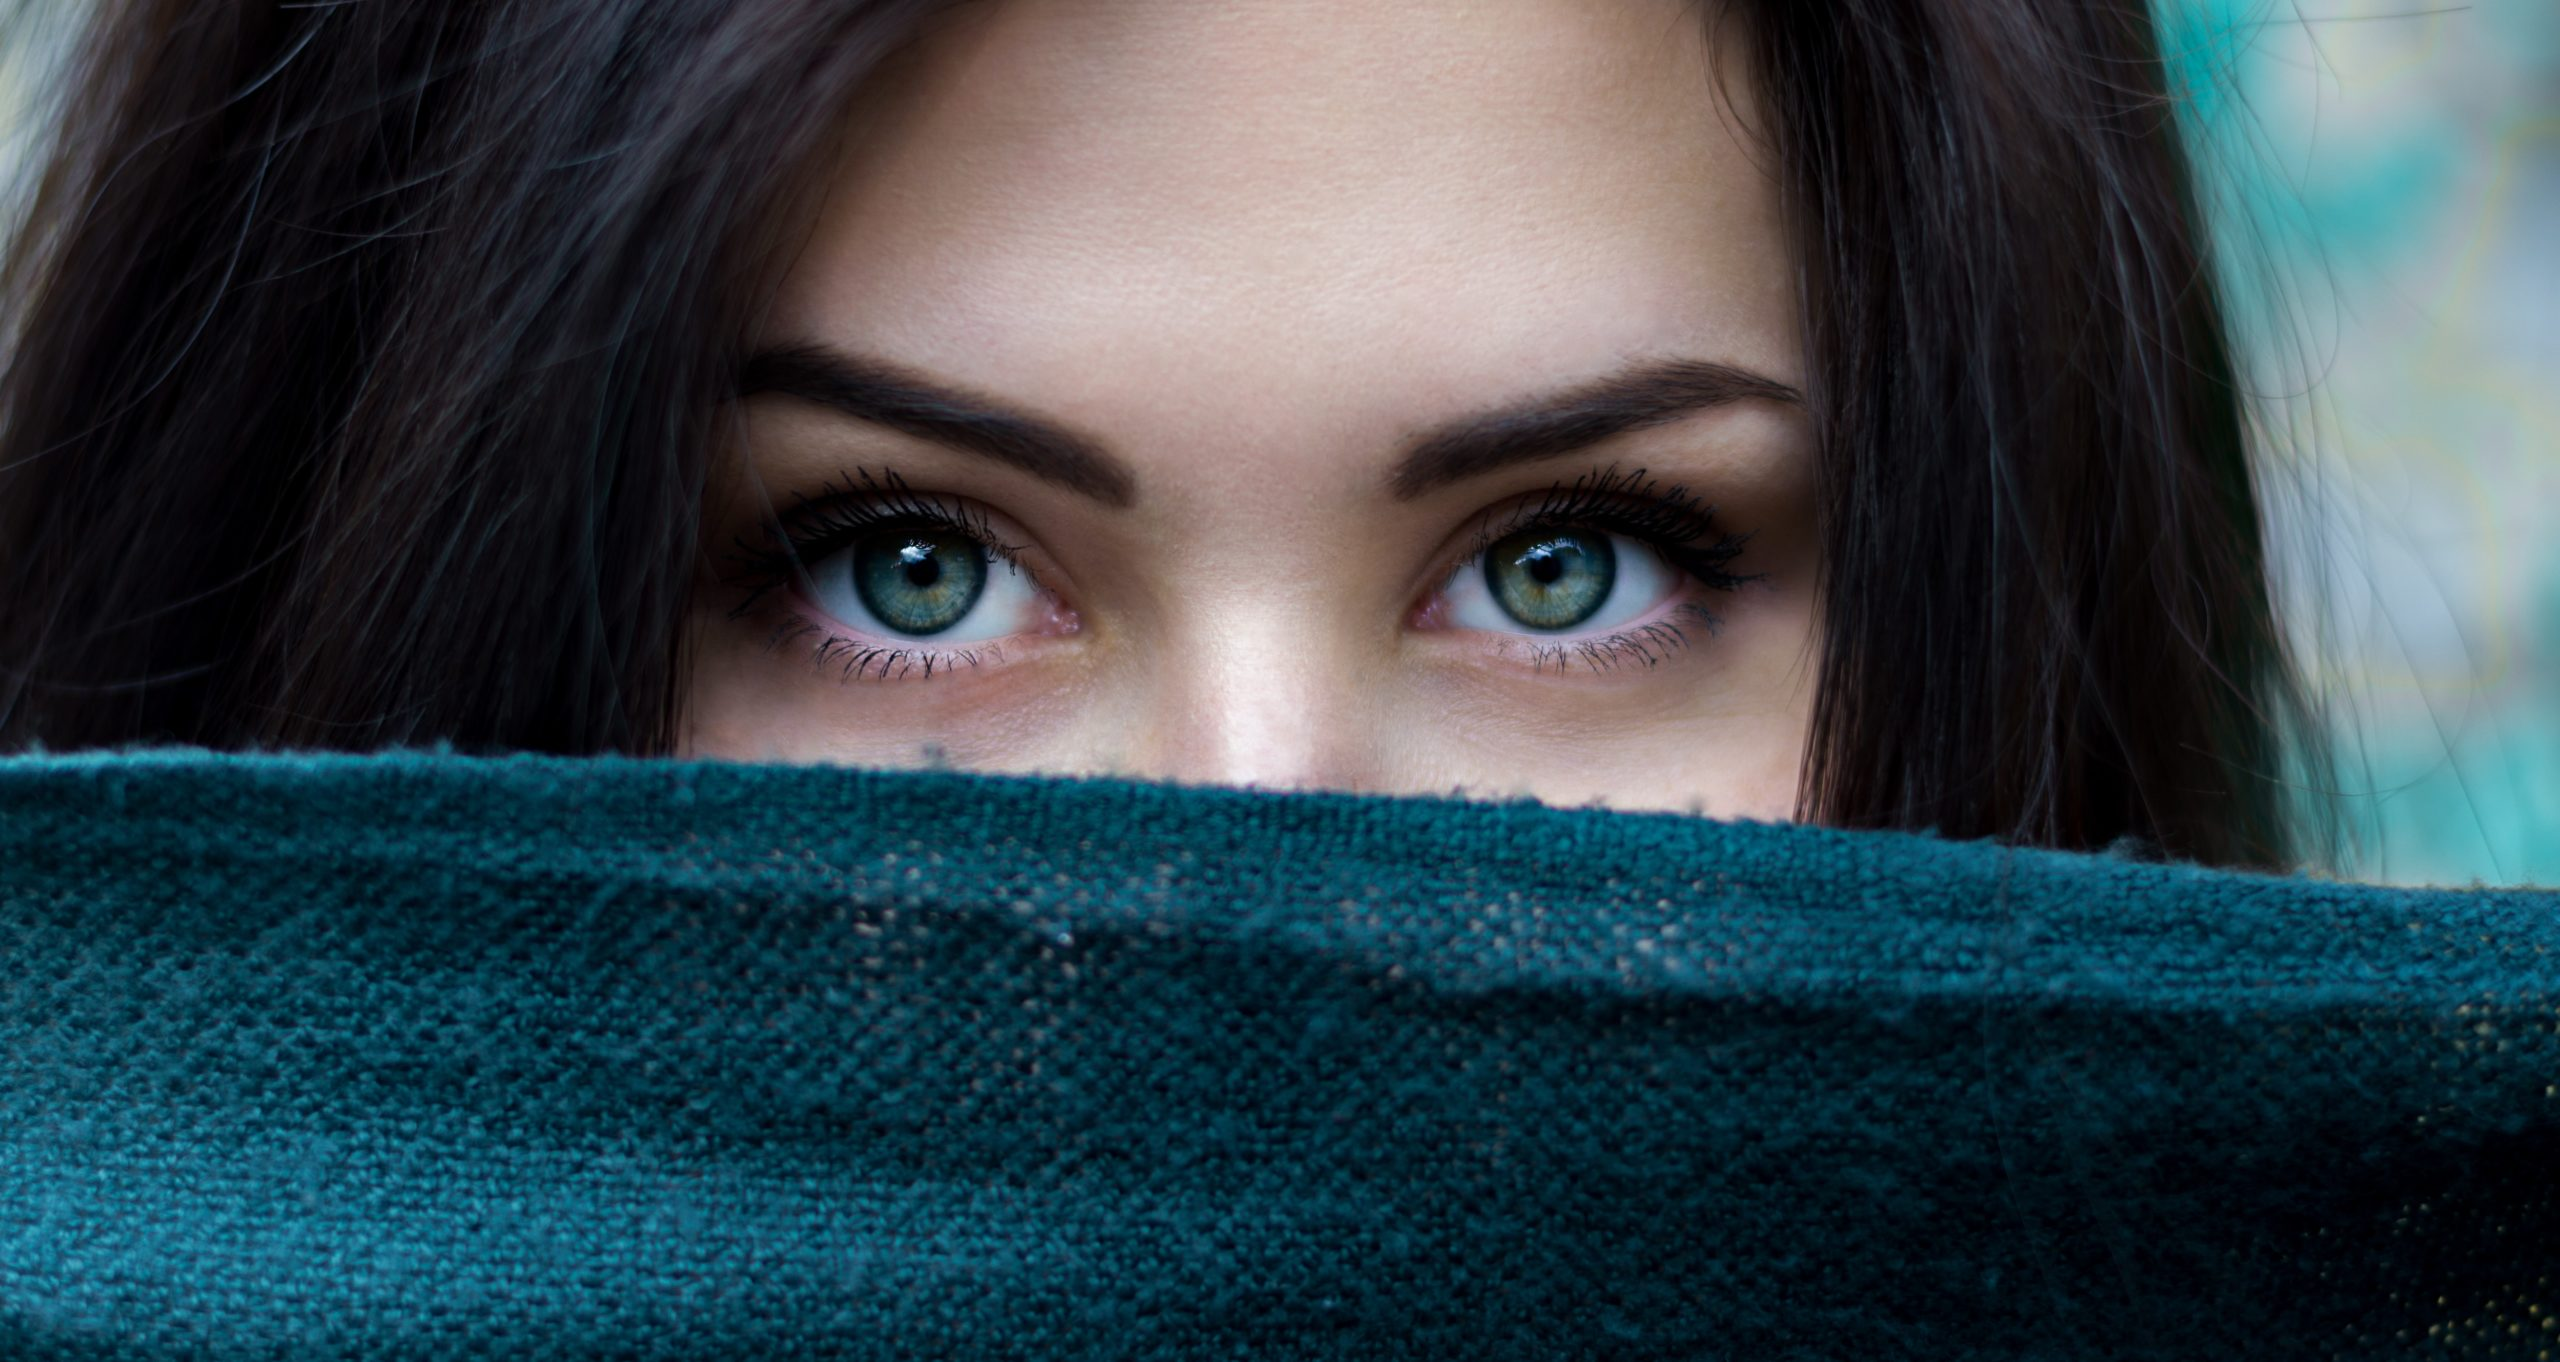 Introverted Managers Can Lead Without Gift of Gab by Scott S. Bateman